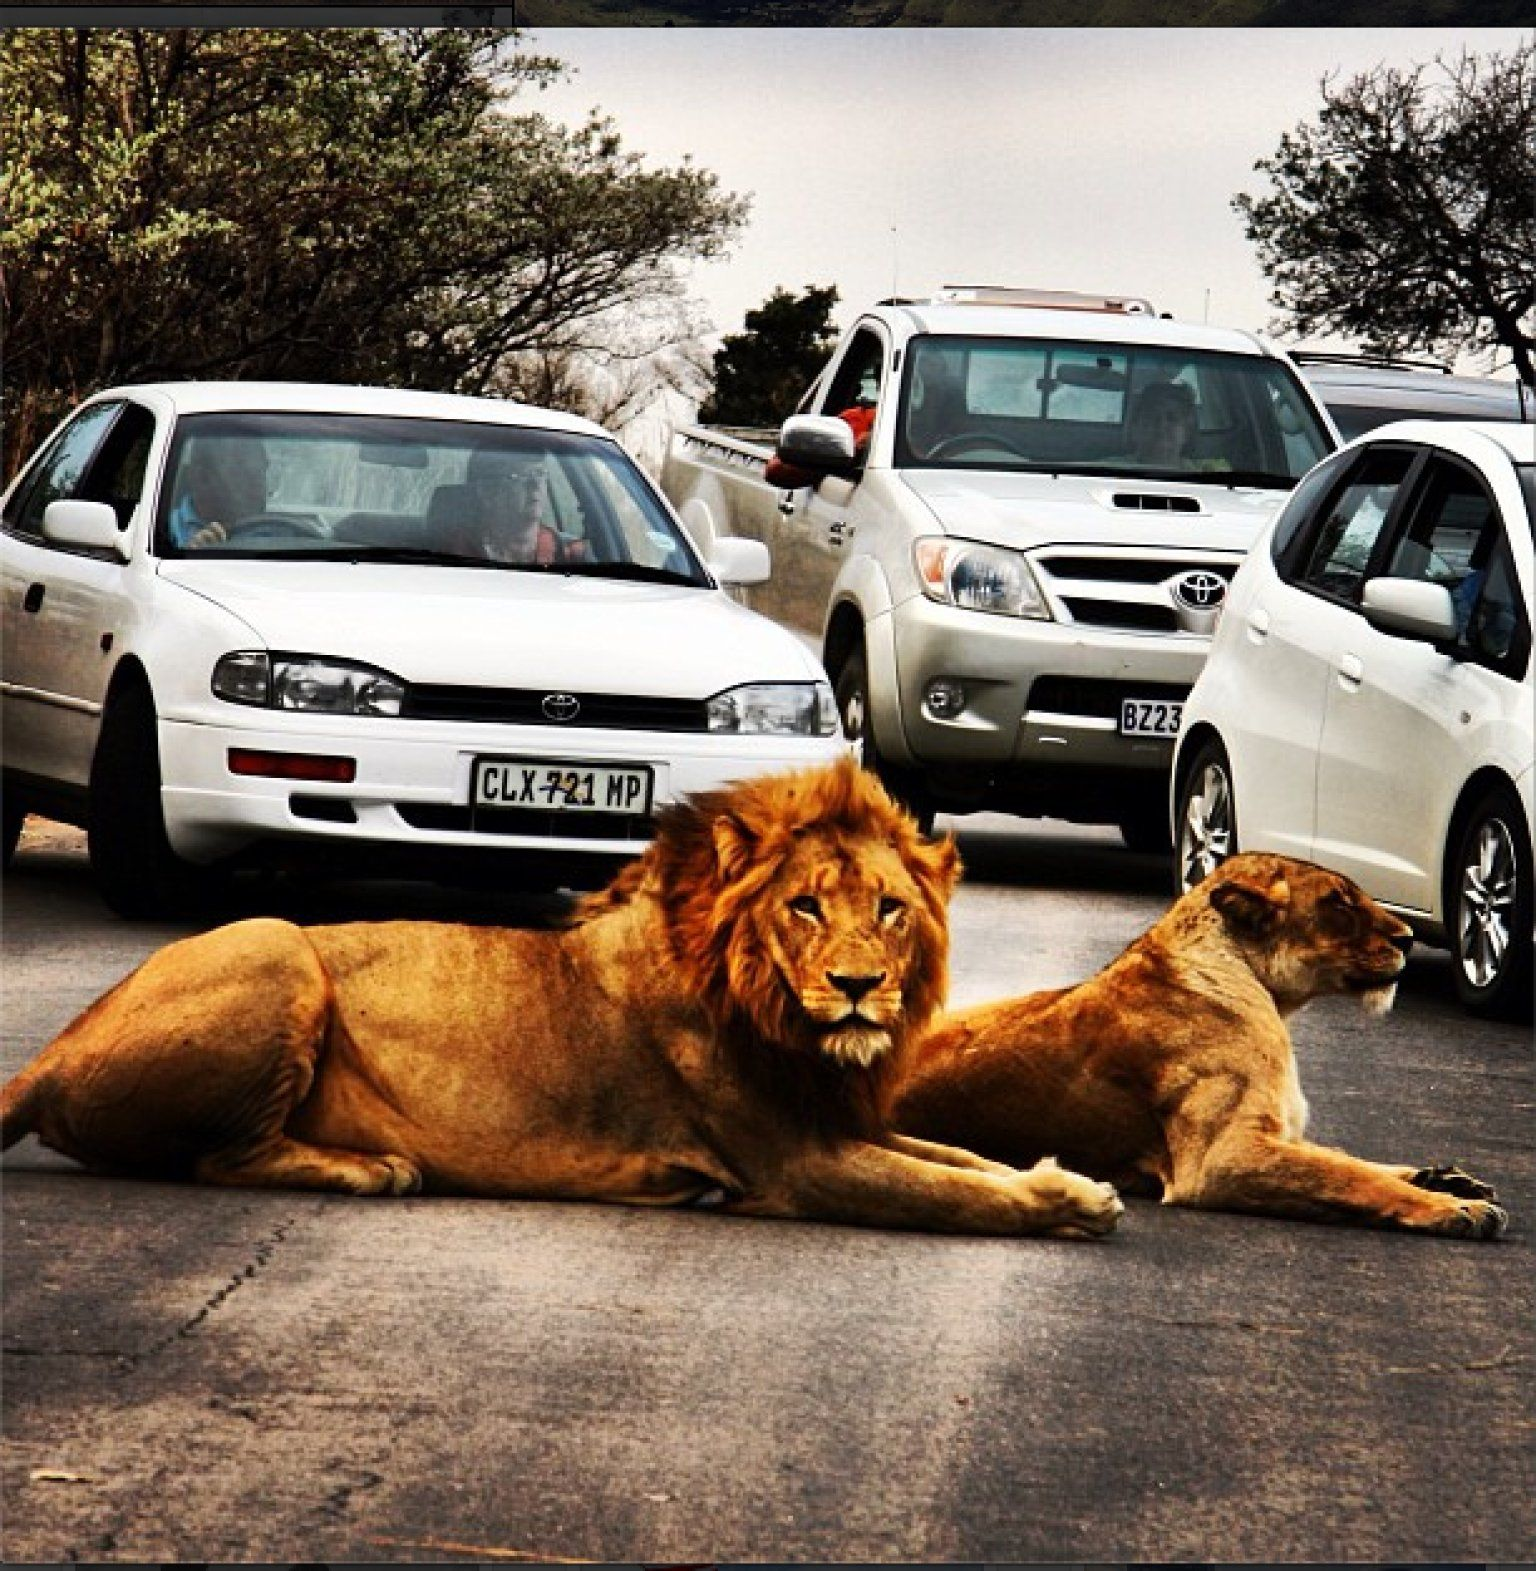 Lions and tigers and traffic jams oh my